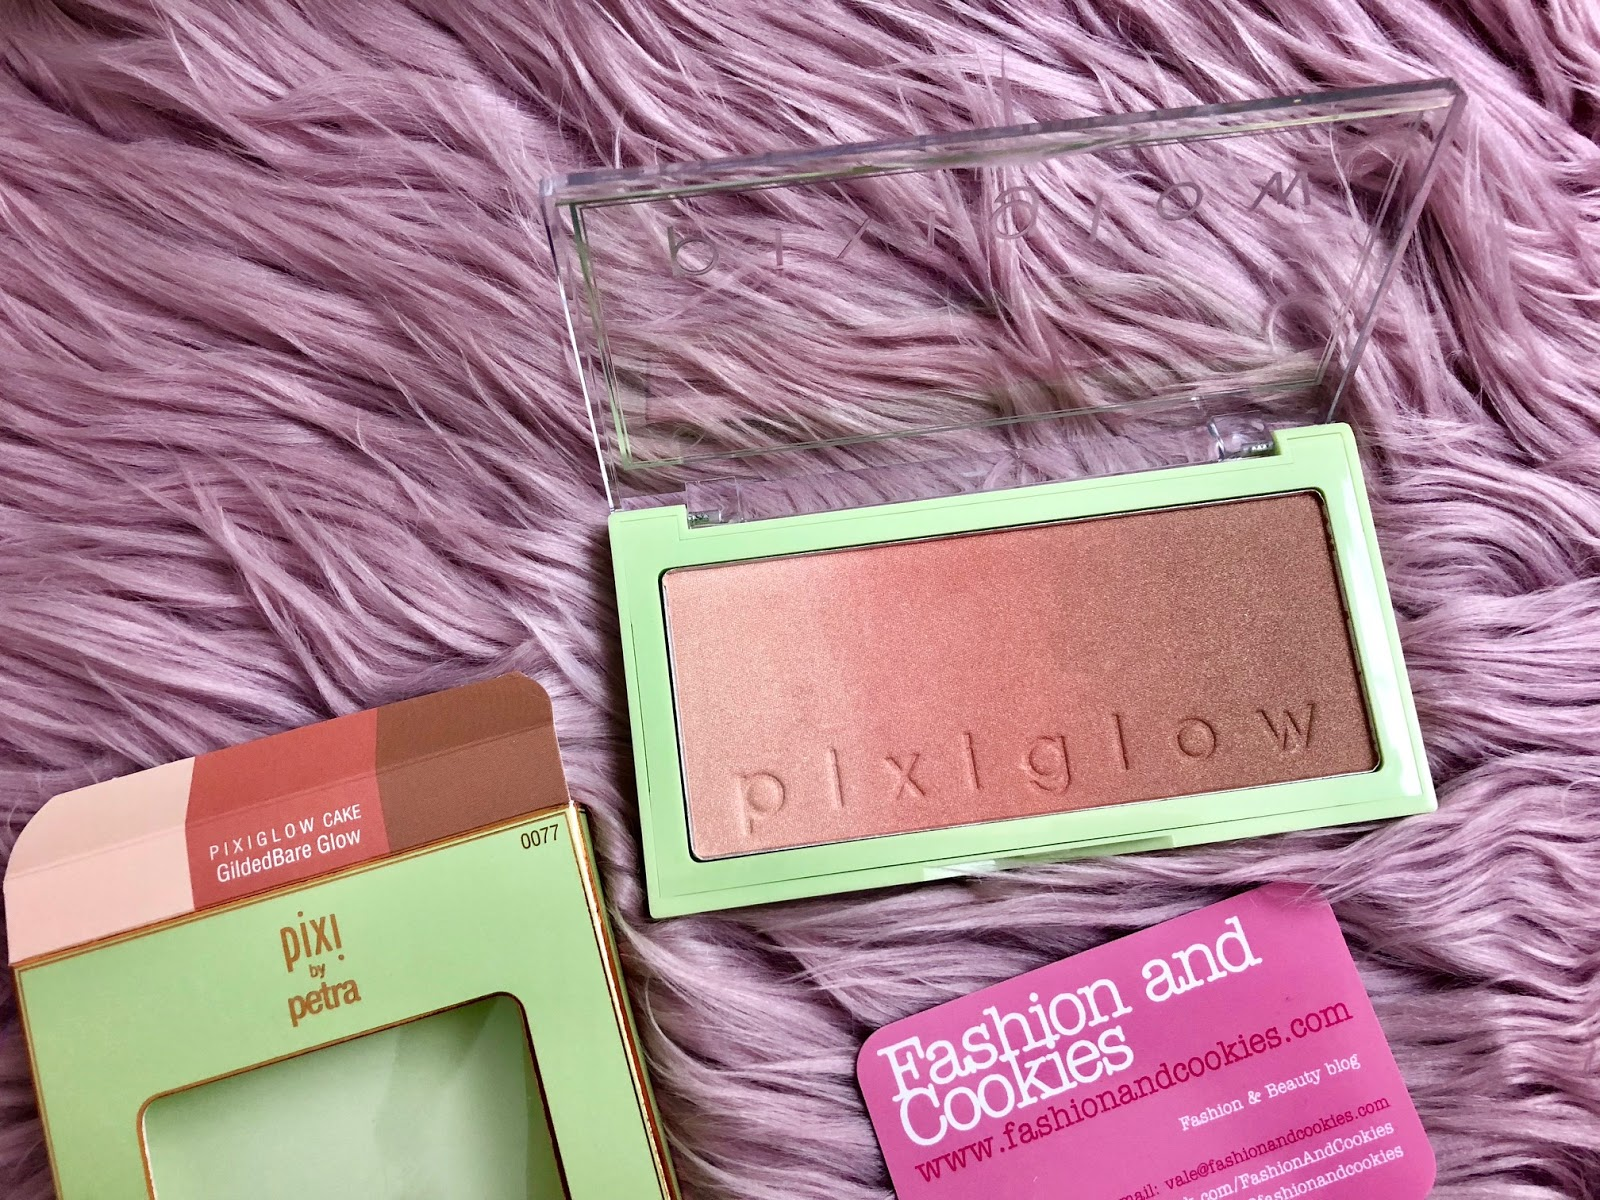 PixiGlow Cake palettes: new from Pixi Beauty GildedBare glow on Fashion and Cookies beauty blog